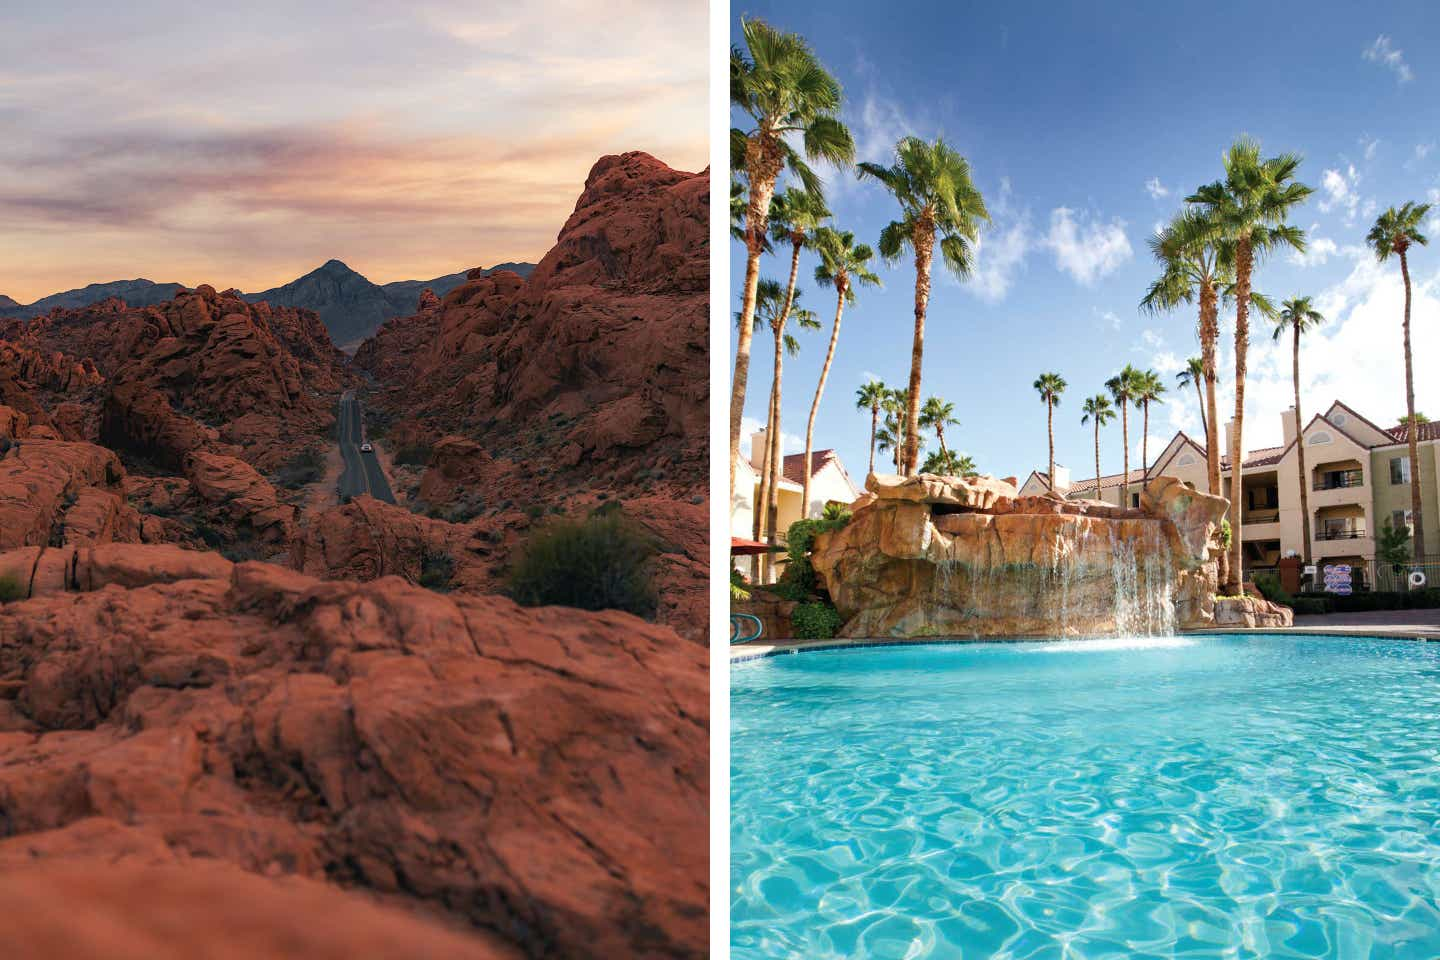 Left: Valley of Fire state Parks rolling rock formations alongside the road. Right: Exterior shot of our Desert Club Resort pool and waterfall feature.